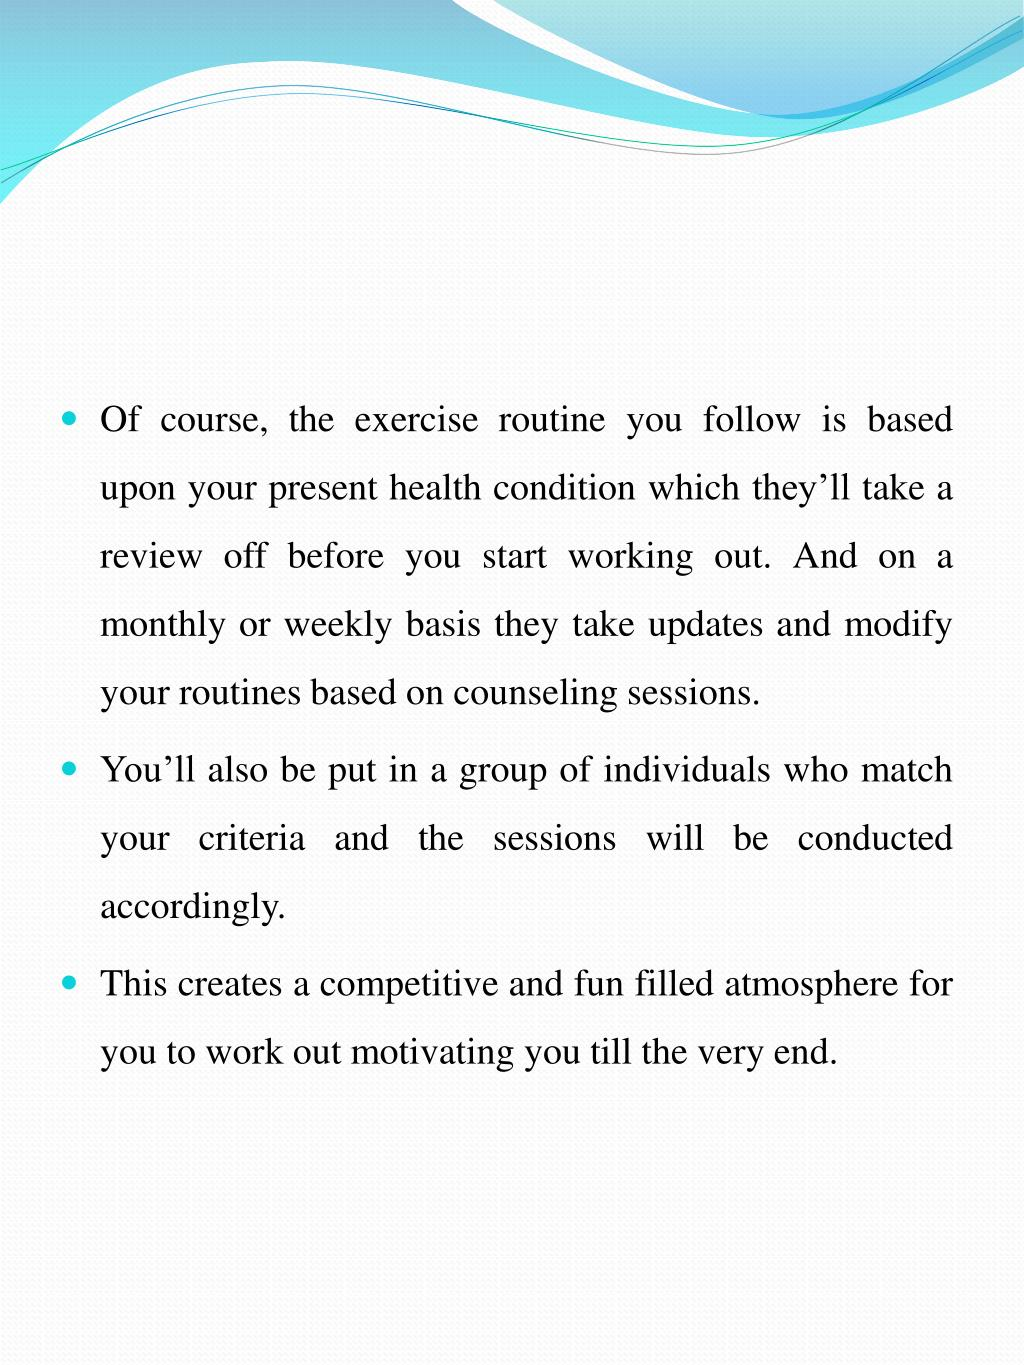 Of course, the exercise routine you follow is based upon your present health condition which they'll take a review off before you start working out. And on a monthly or weekly basis they take updates and modify your routines based on counseling sessions.